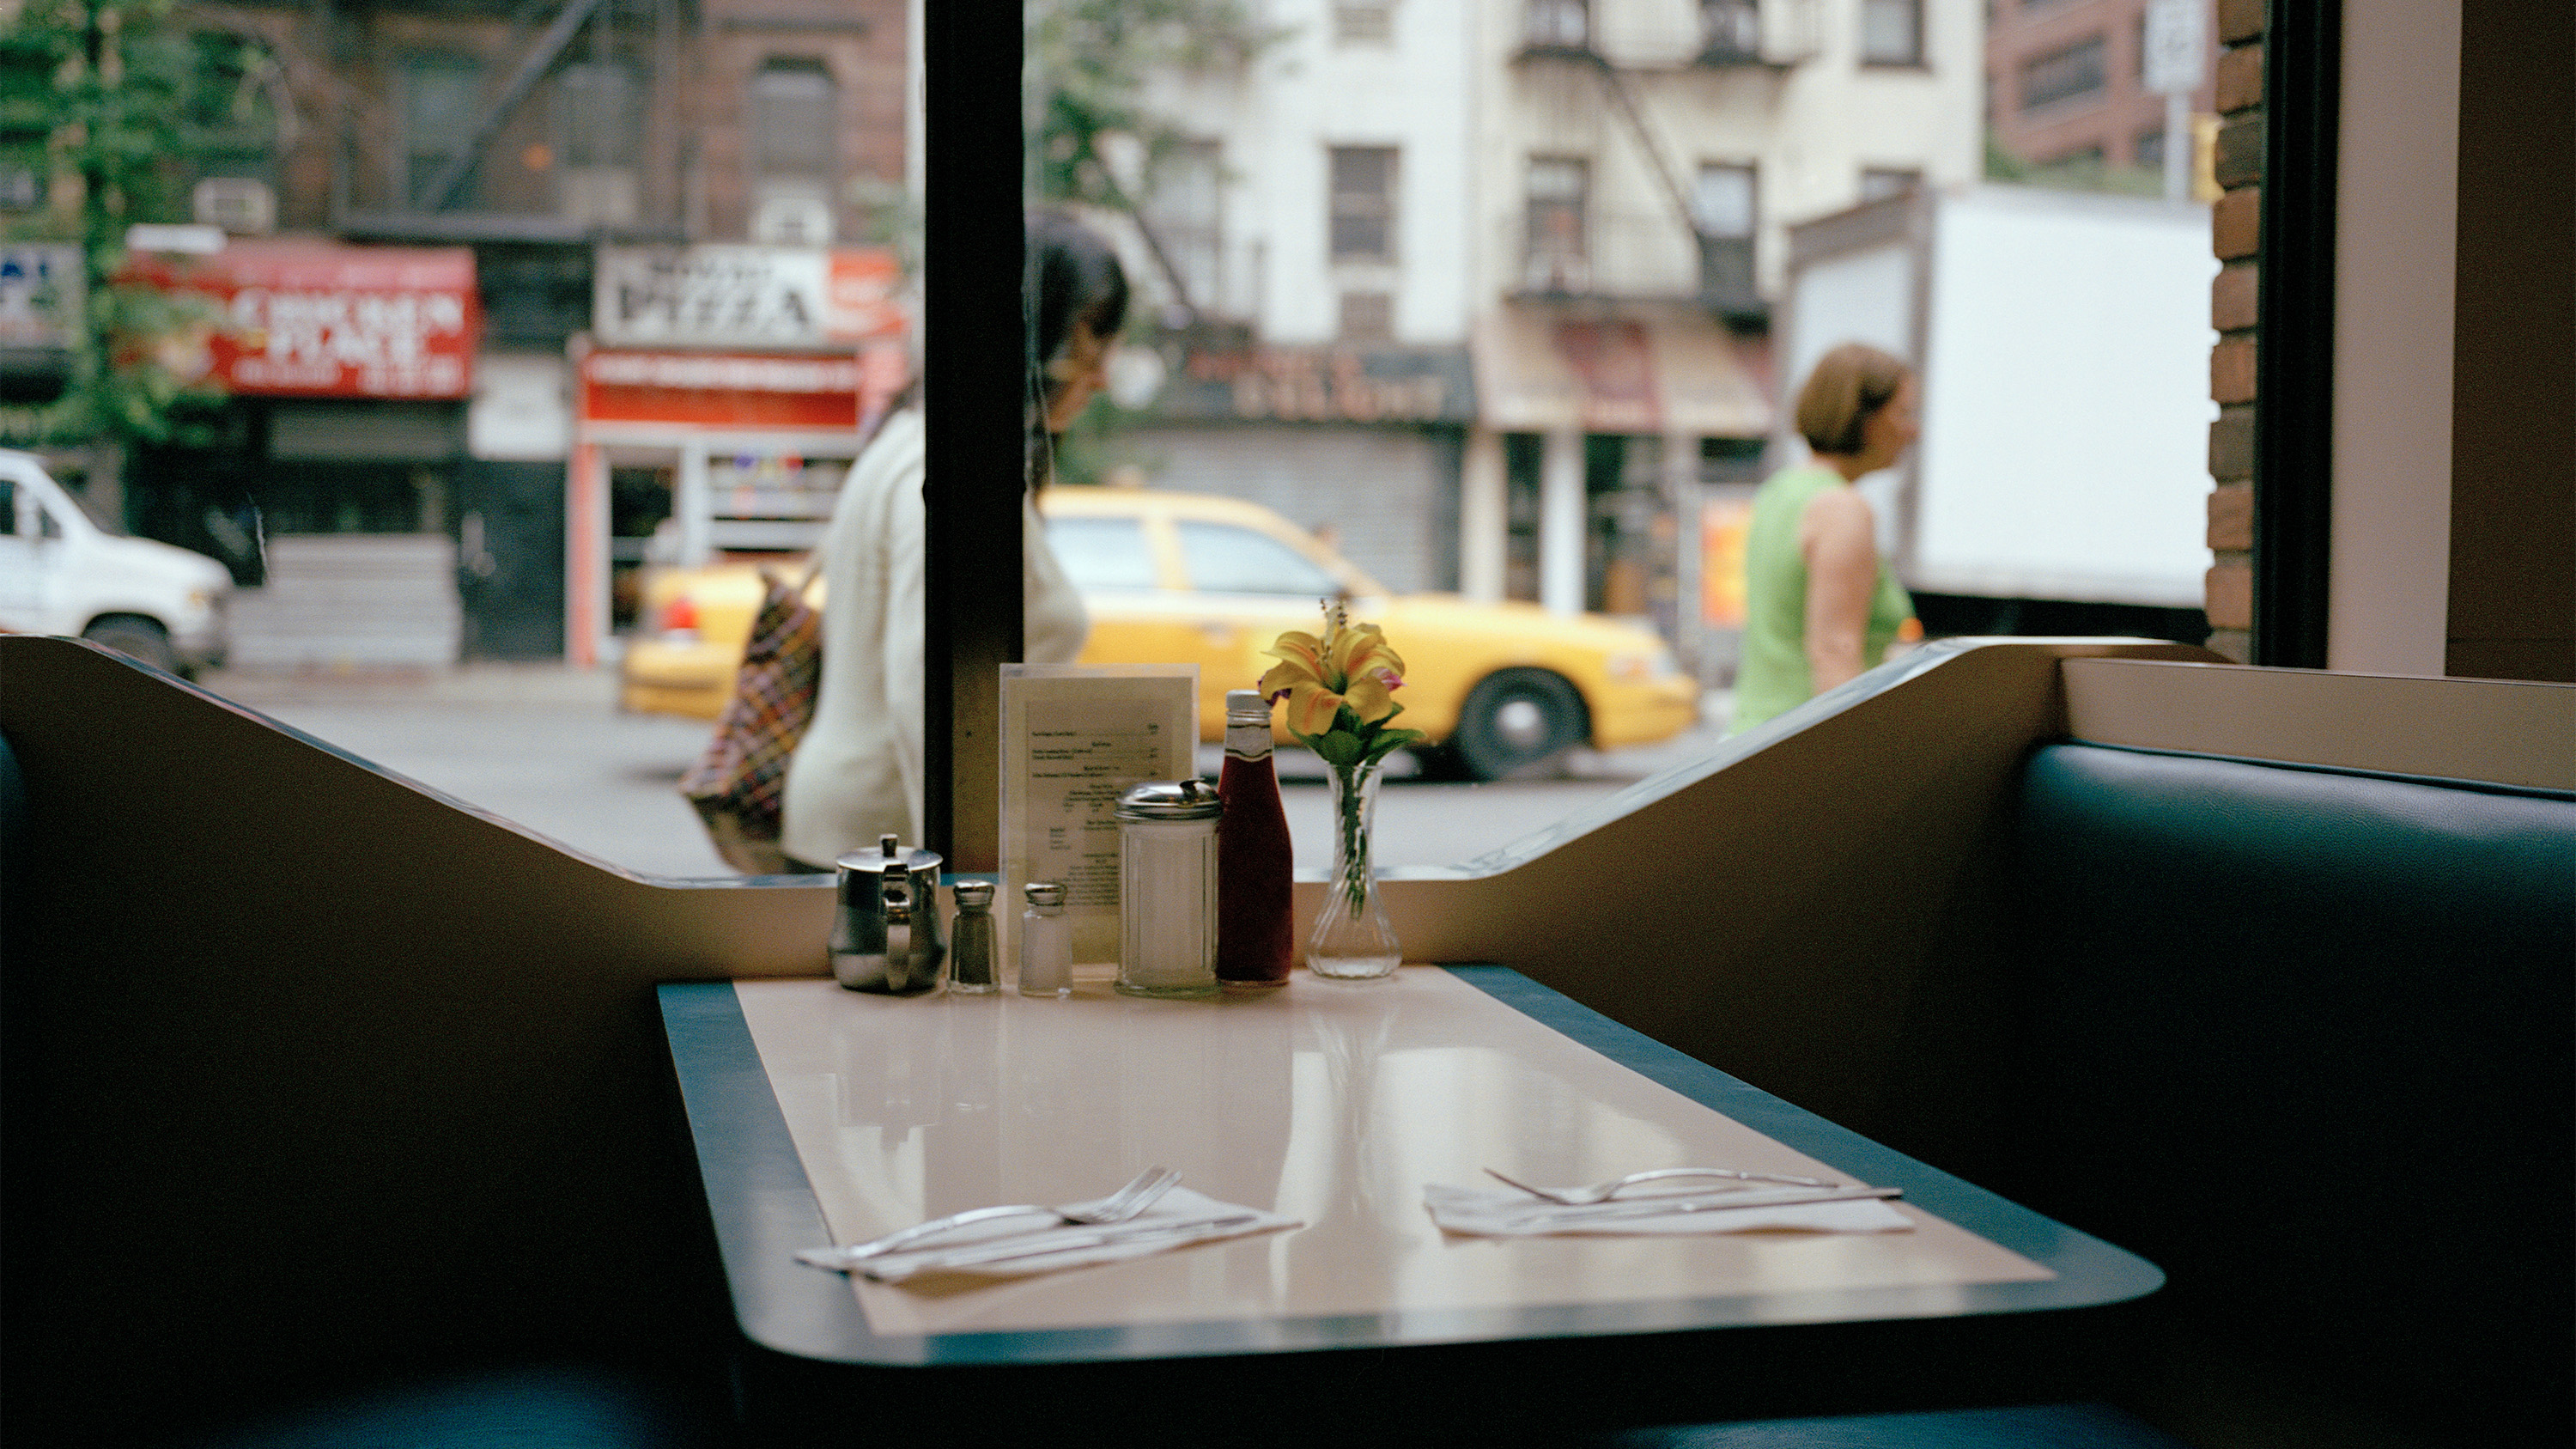 An empty booth in an NYC diner